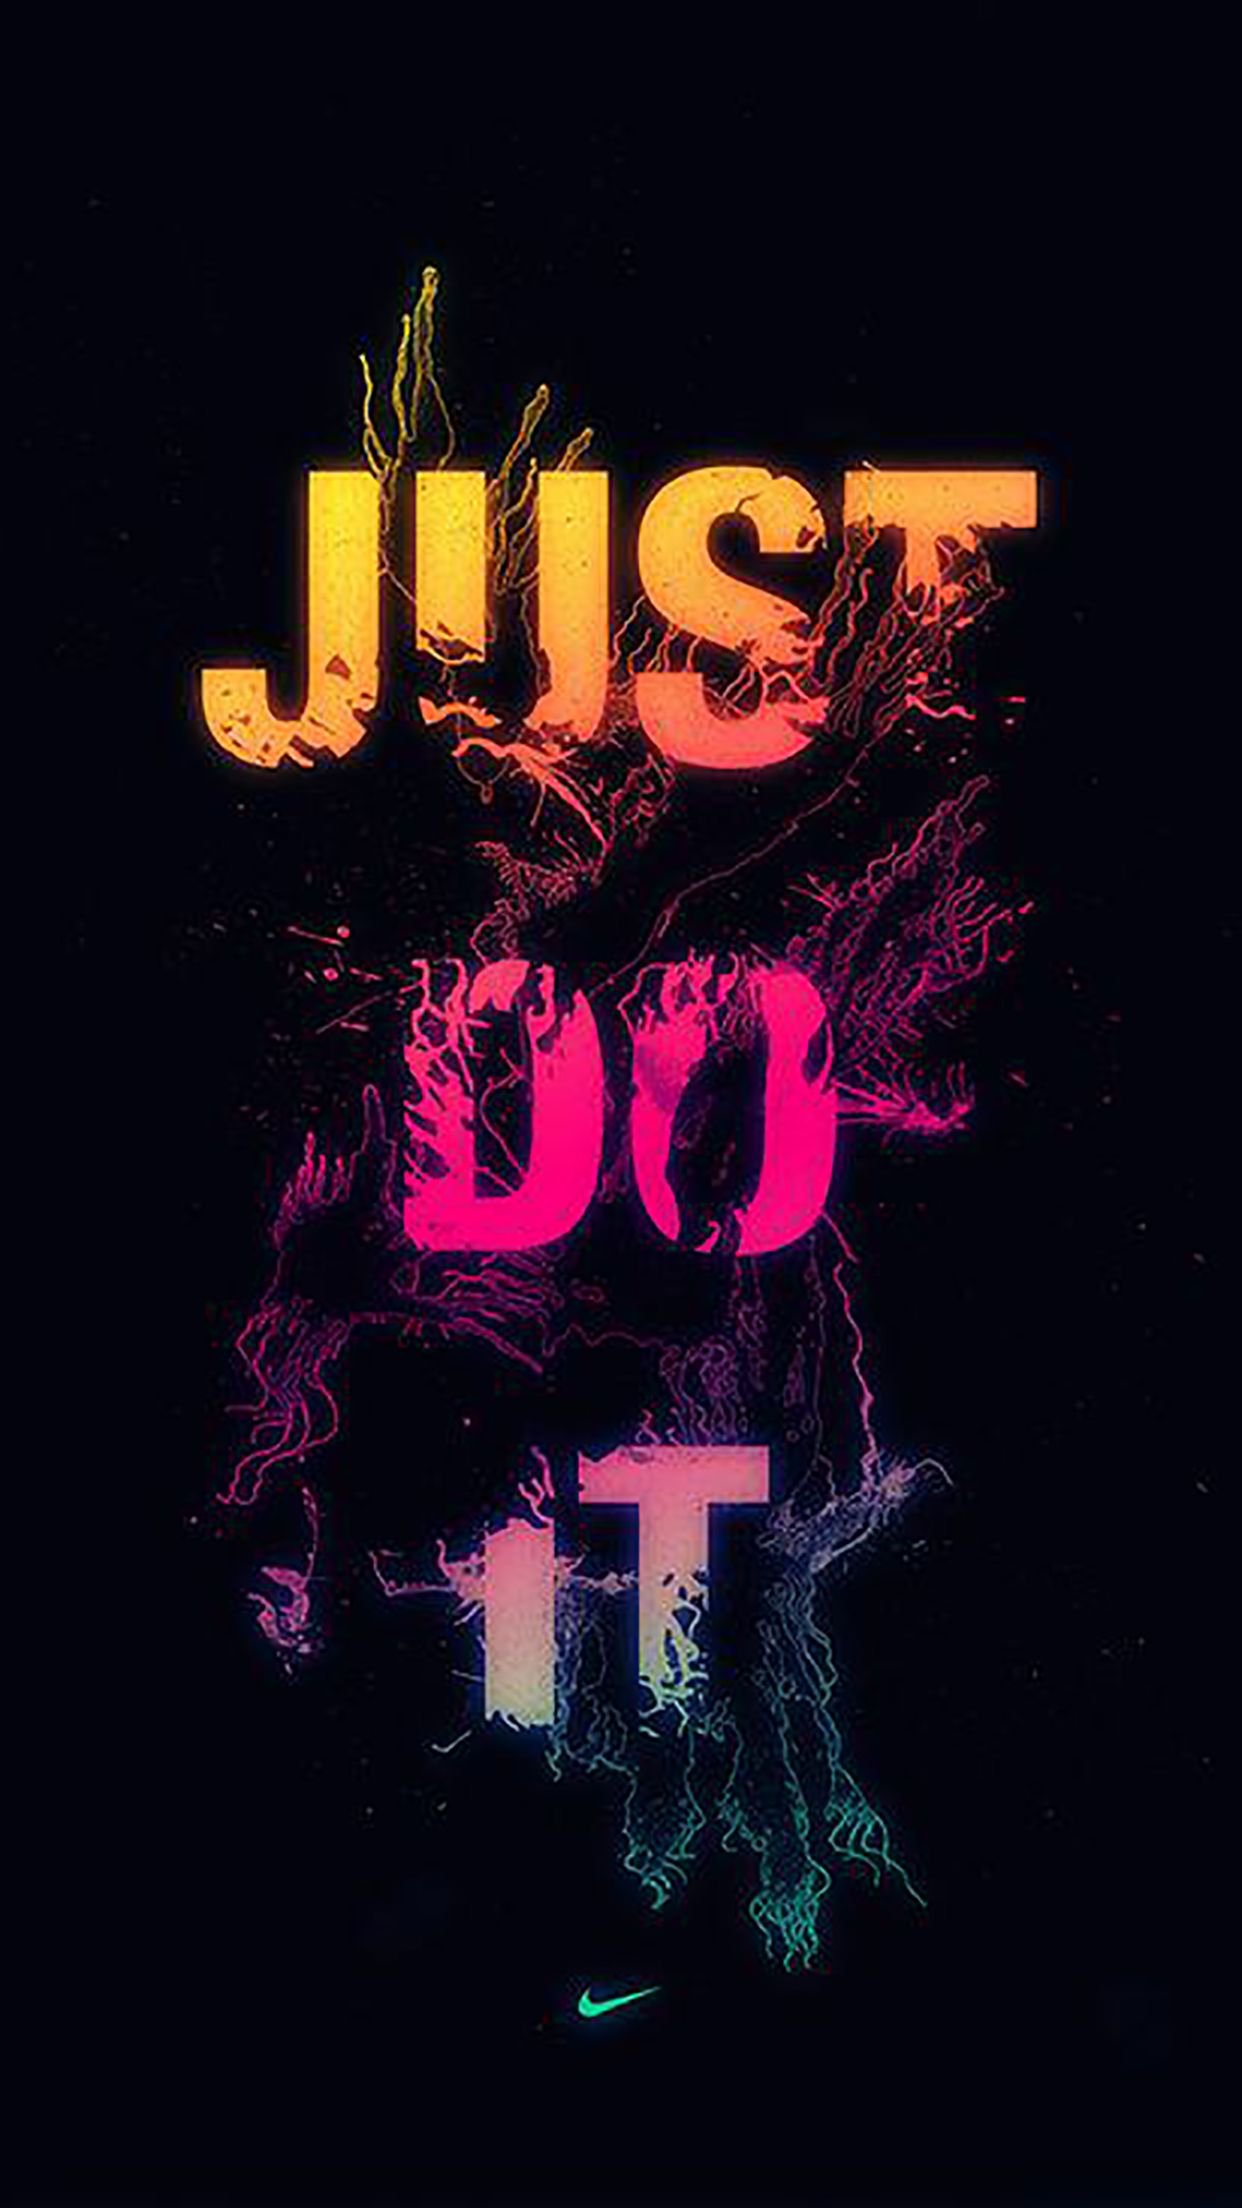 Wallpaper Hd Iphone X 8 7 6 Nike Just Do It 1 Free Download Just Do It Wallpapers Nike Wallpaper Iphone Nike Motivation